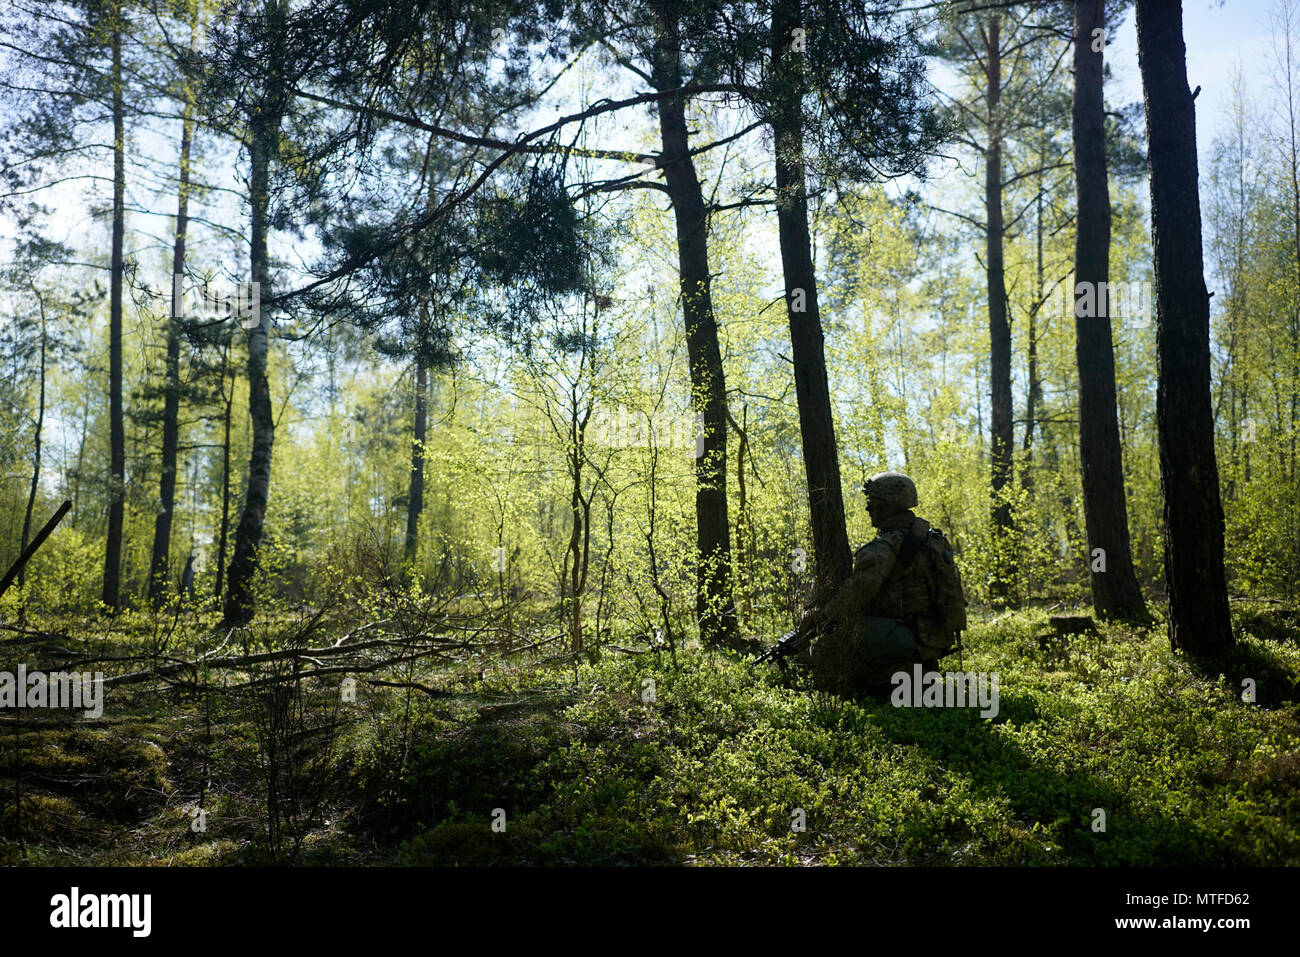 A U.S. Soldier of Comanche Troop, 4th Squadron, 10th Cavalry Regiment, 3rd Armored Brigade Combat Team, 4th Infantry Division scans his sector of fire while conducting a live fire operation during Exercise Combined Resolve VIII at the Grafenwoehr Training Area, Germany April 24, 2017. Exercise Combined Resolve VIII is a multinational exercise designed to train the Army's Regionally Allocated Forces to the U.S. European Command. Combined Resolve VIII will include more than 3,400 participants from 10 nations. The goal of the exercise is to prepare forces in Europe to operate together to promote  - Stock Image